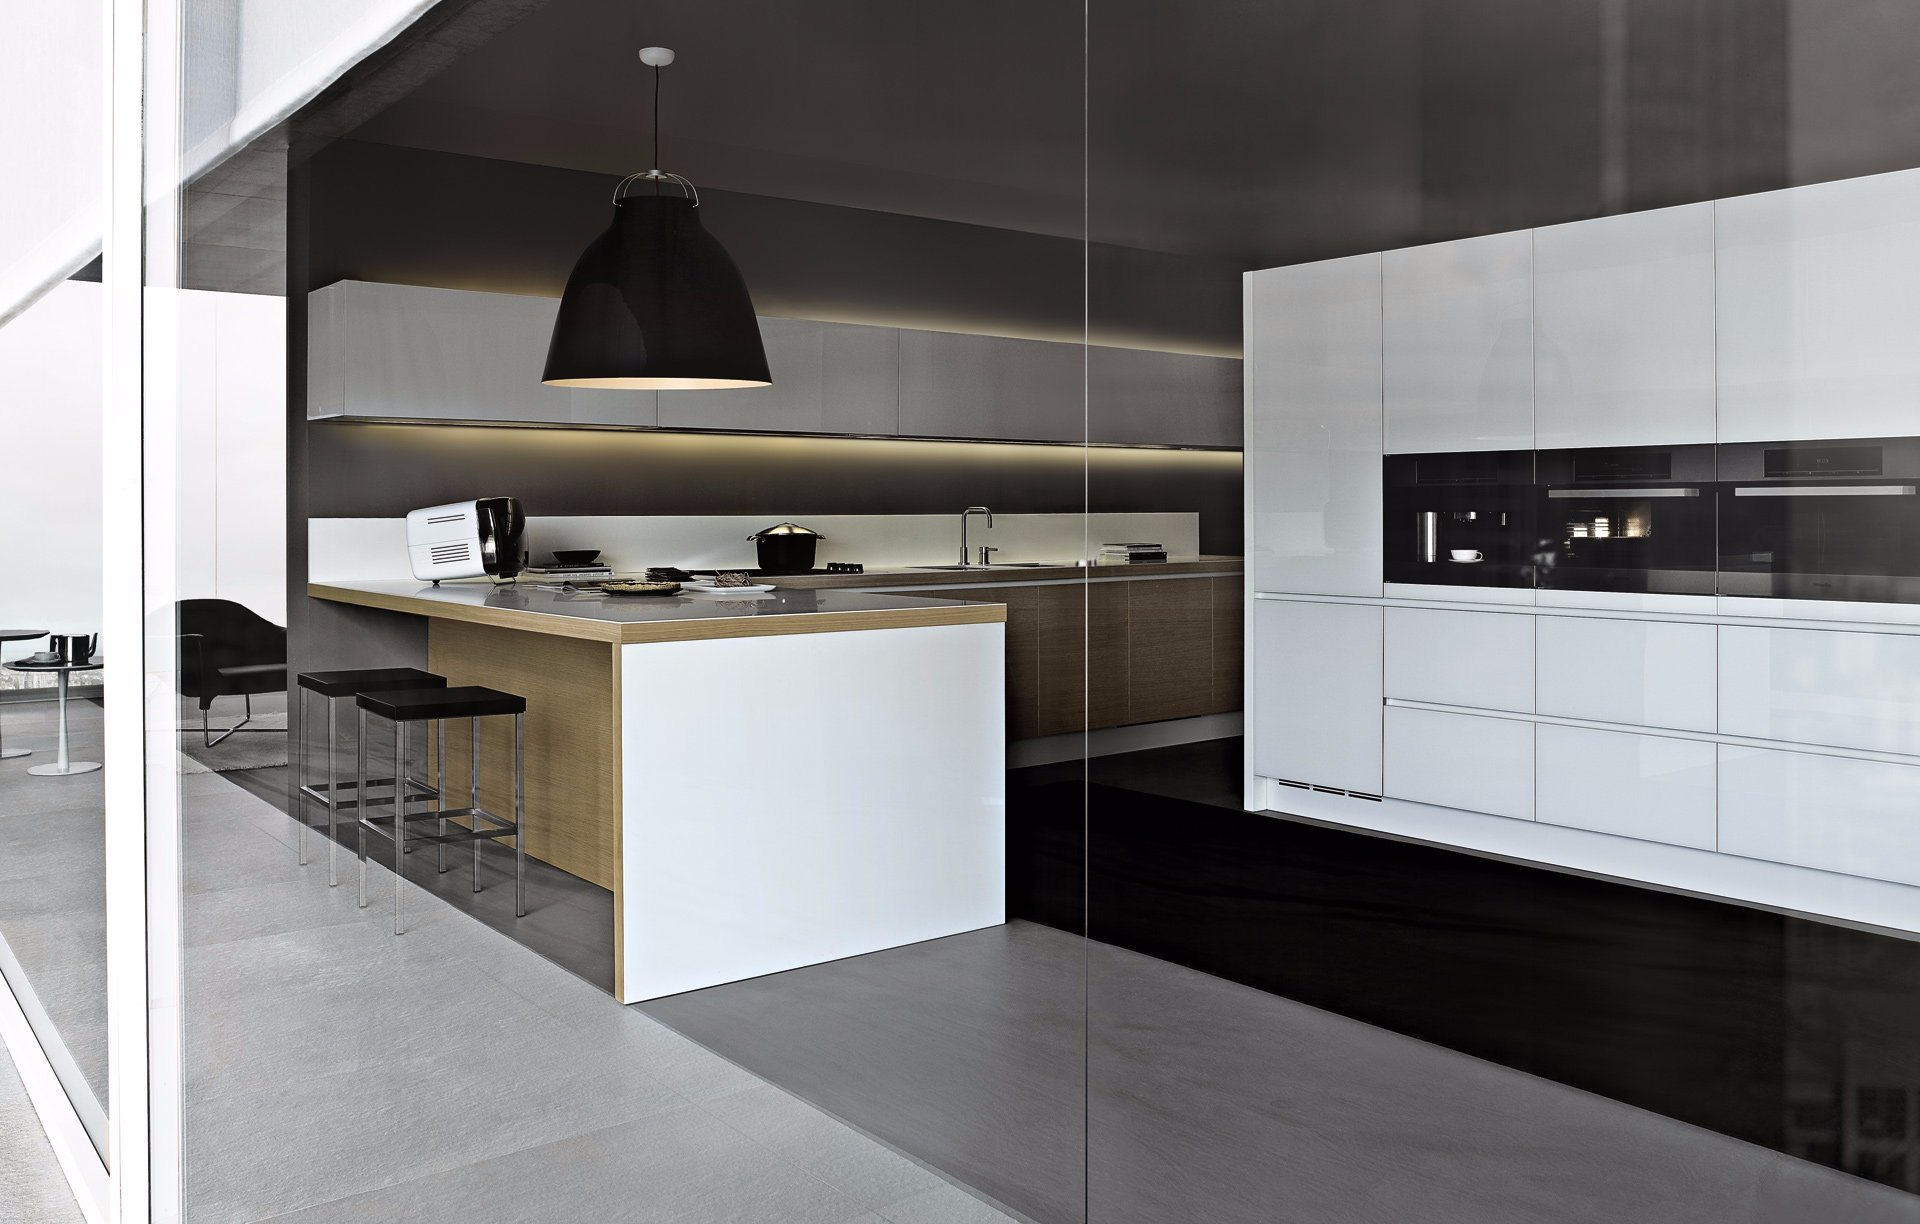 2 PAC Interior Design Kitchen High Pantry for Microwave Oven with Wood Venner Cabinet & Countertop